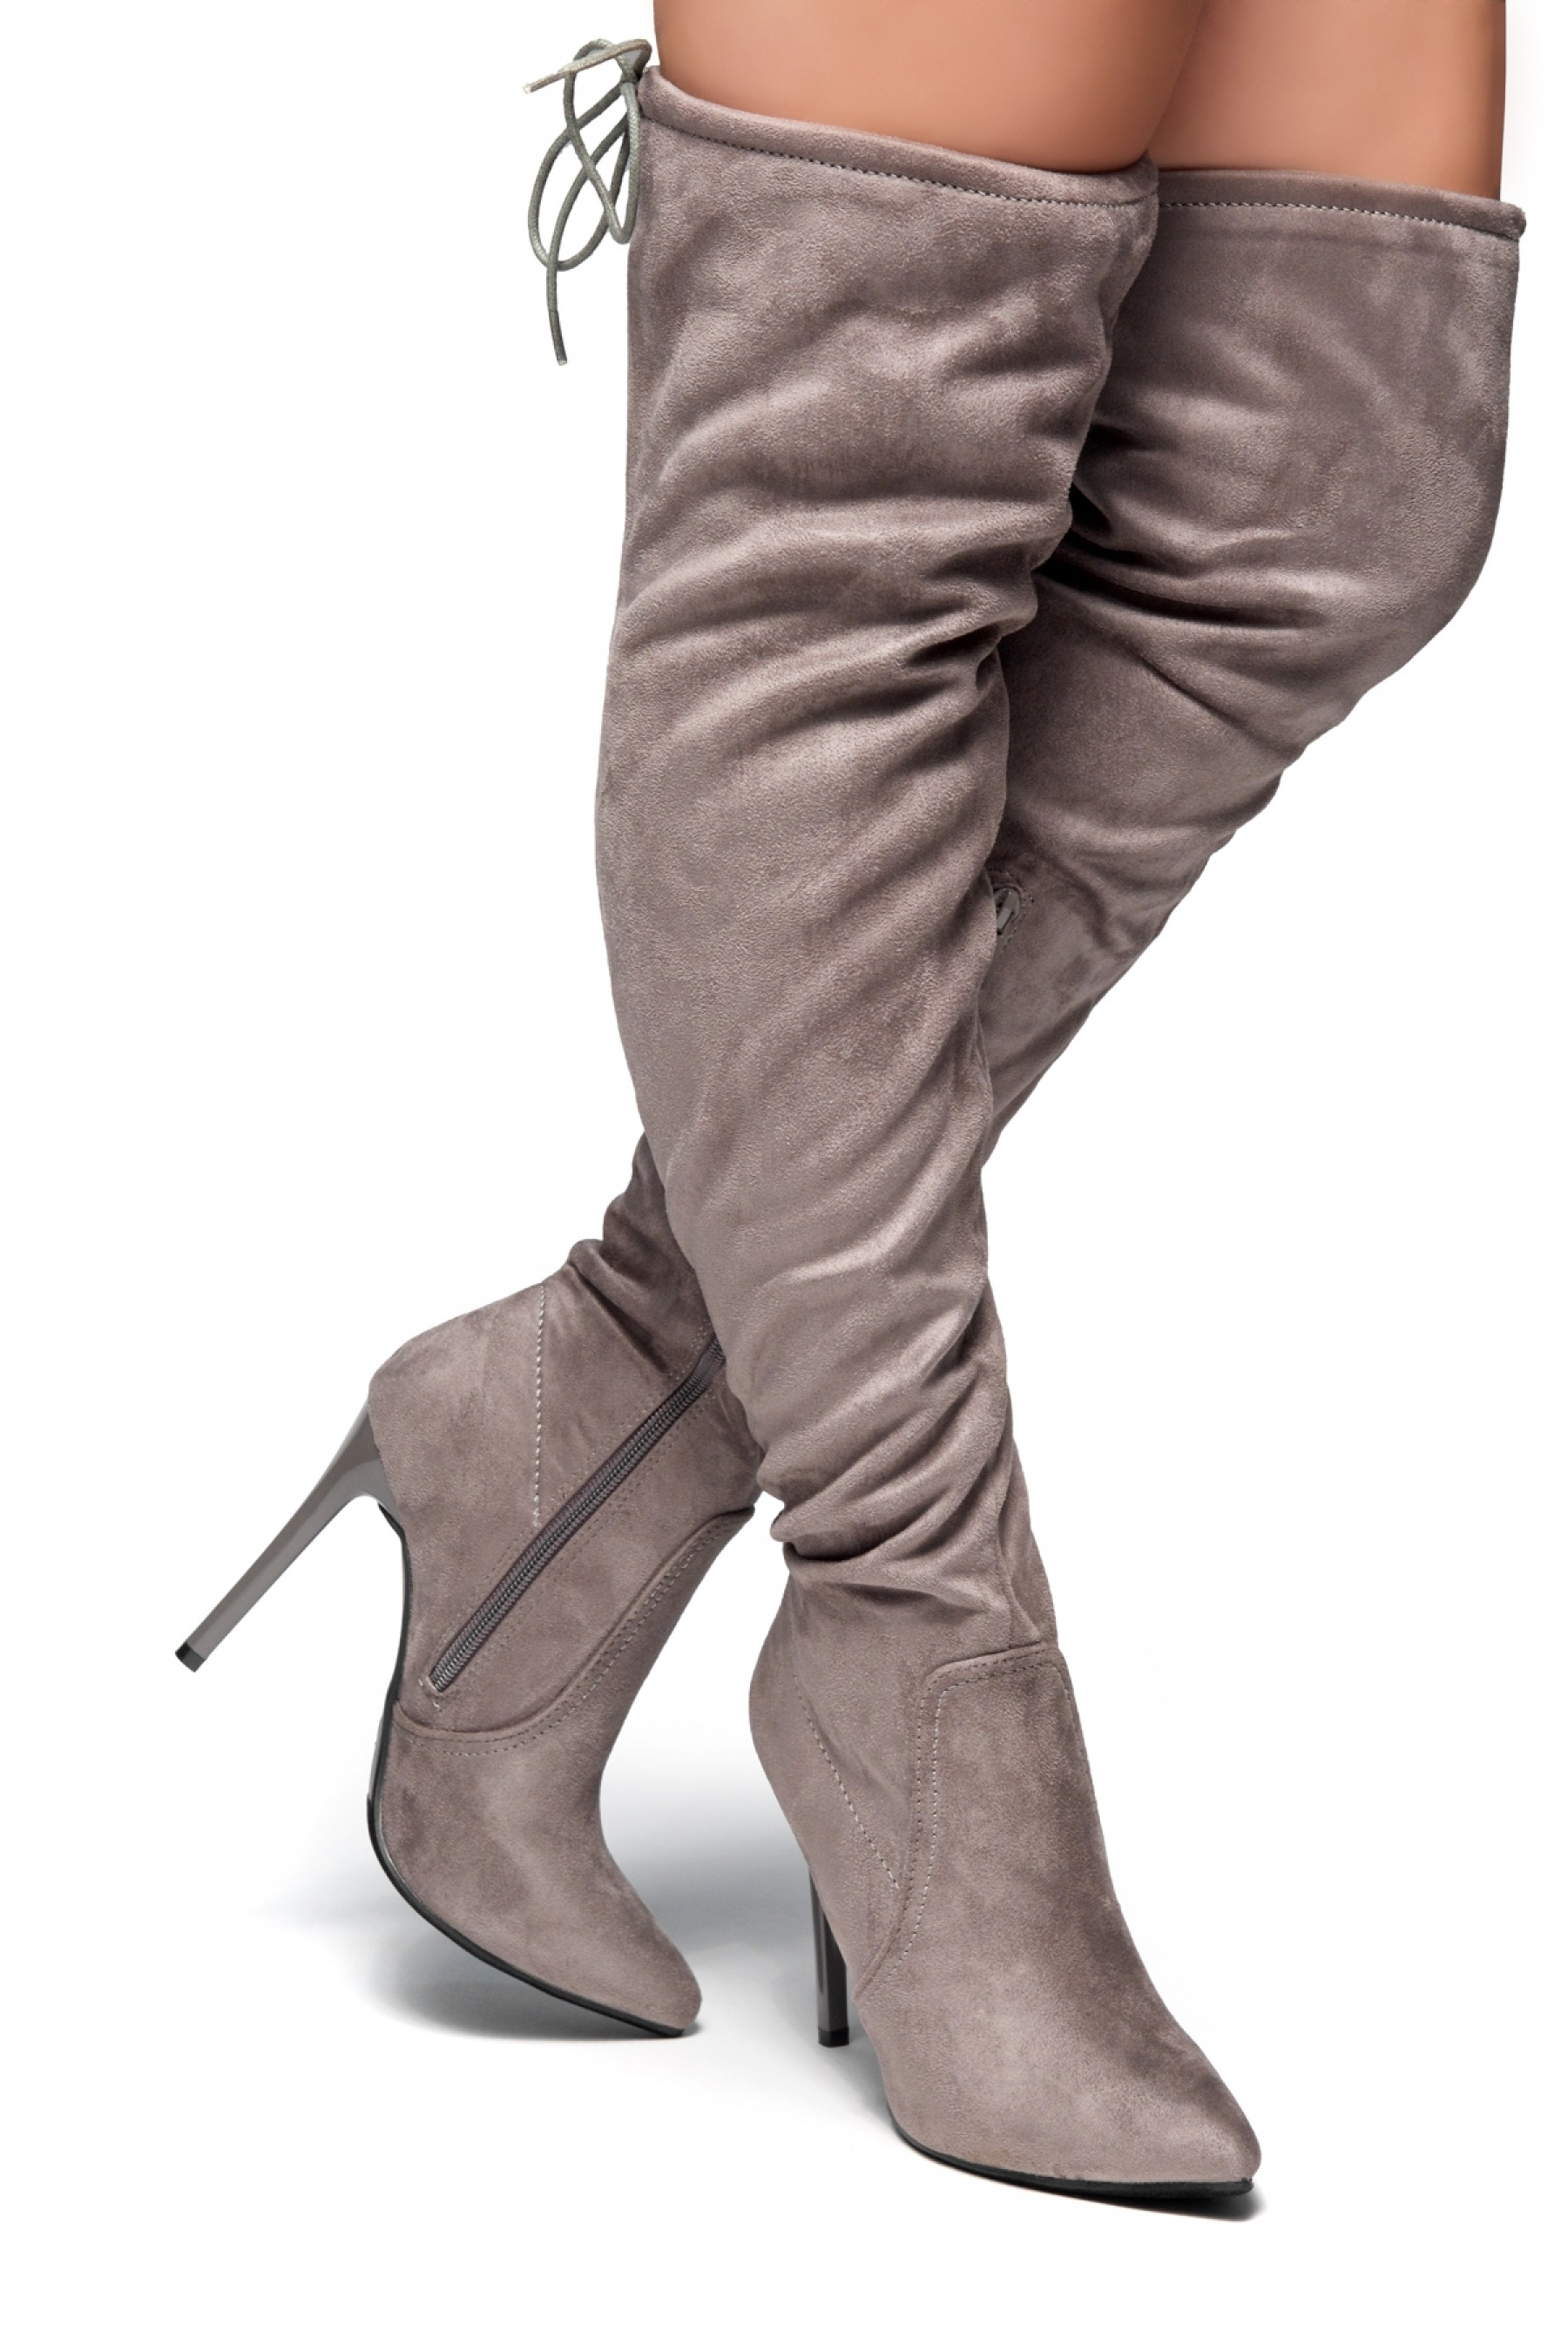 Women's Megann Faux Suede Over The Knee , thigh hi Pointy Toe Boots - Grey